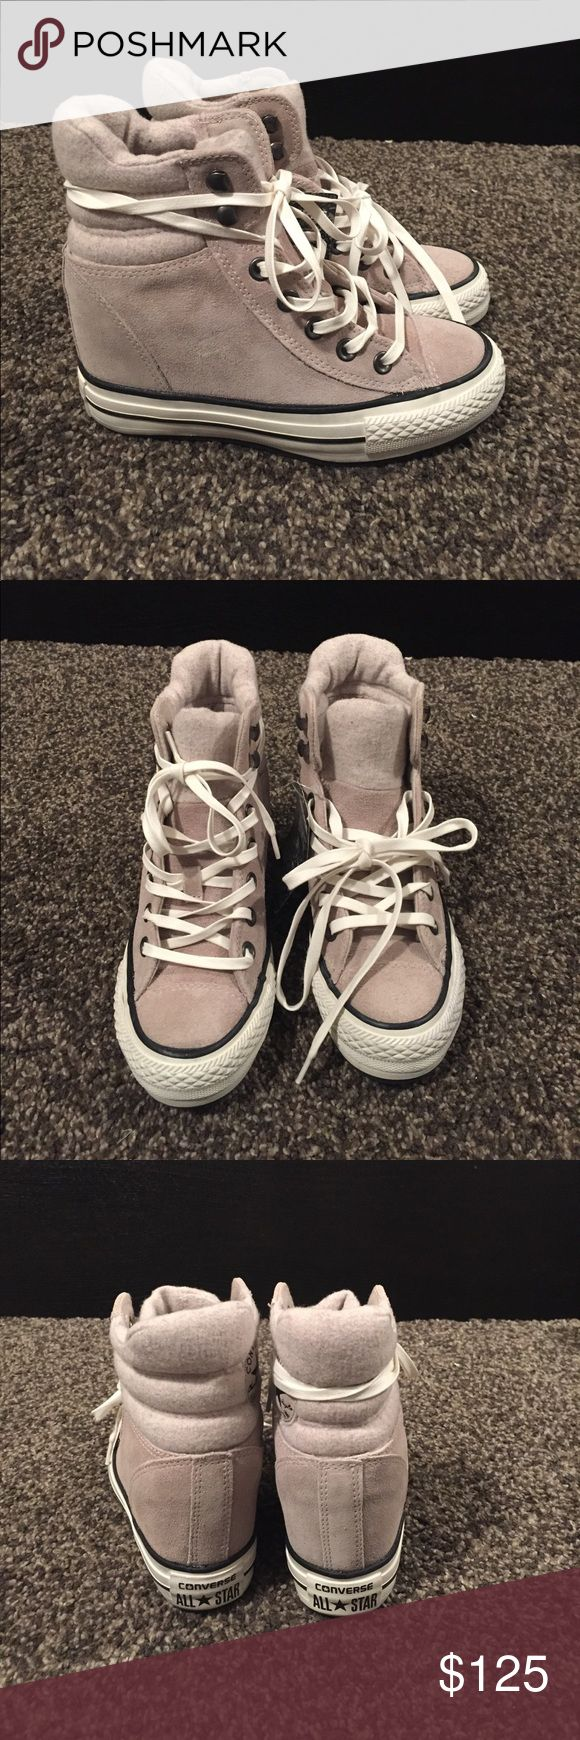 Converse lux suede wedge sneakers Brand new without box but tags attached converse wedge heel plush high tops.  The Chuck Taylor Hi sneakers with upward Platform has a hidden interior completely with suede ankle collar and tab top upholstered in fabric and quilted warm woolly.  Size 6.5 Converse Shoes Sneakers